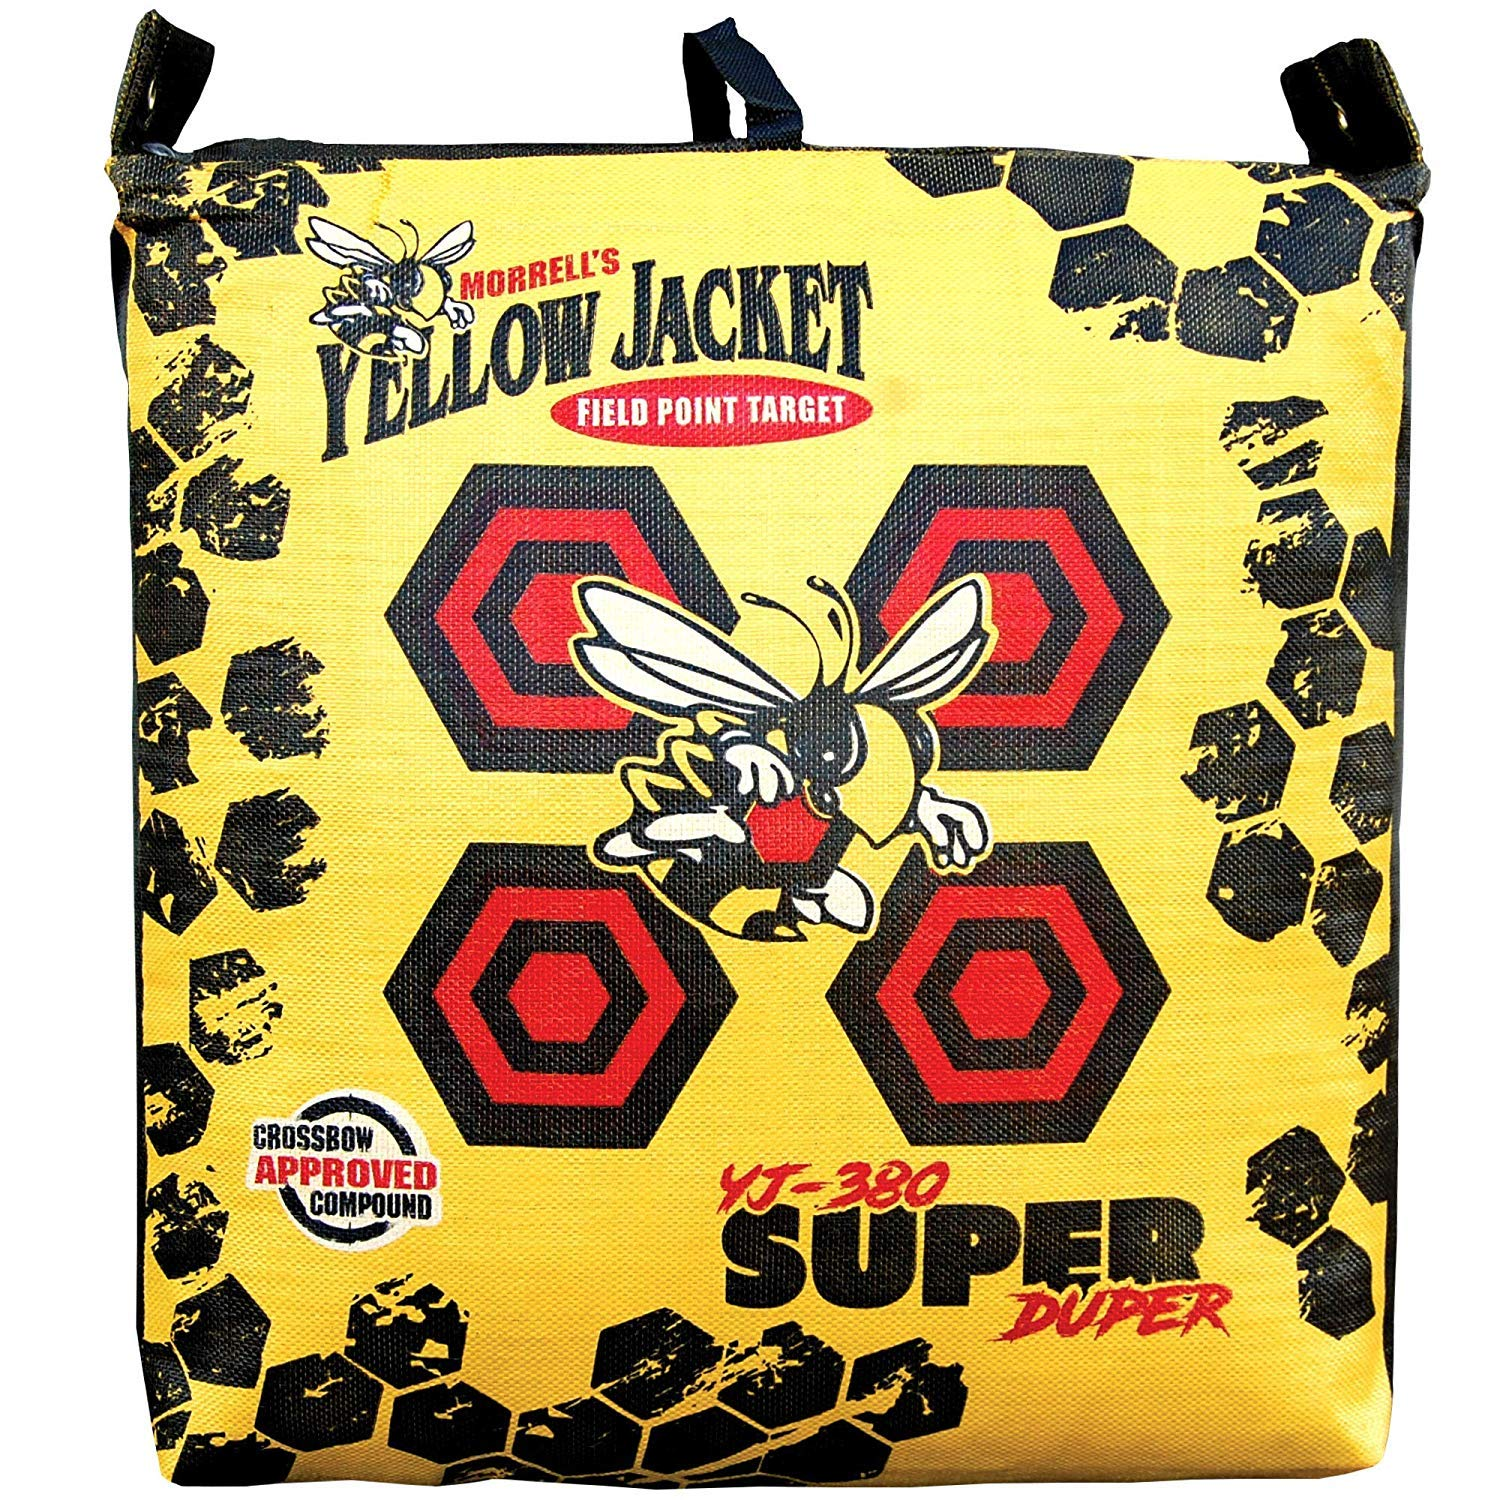 Morrell Super Duper Field Point Bag Archery Target - for Compound Bows and Crossbows up to 400FPS (Pack of 2)